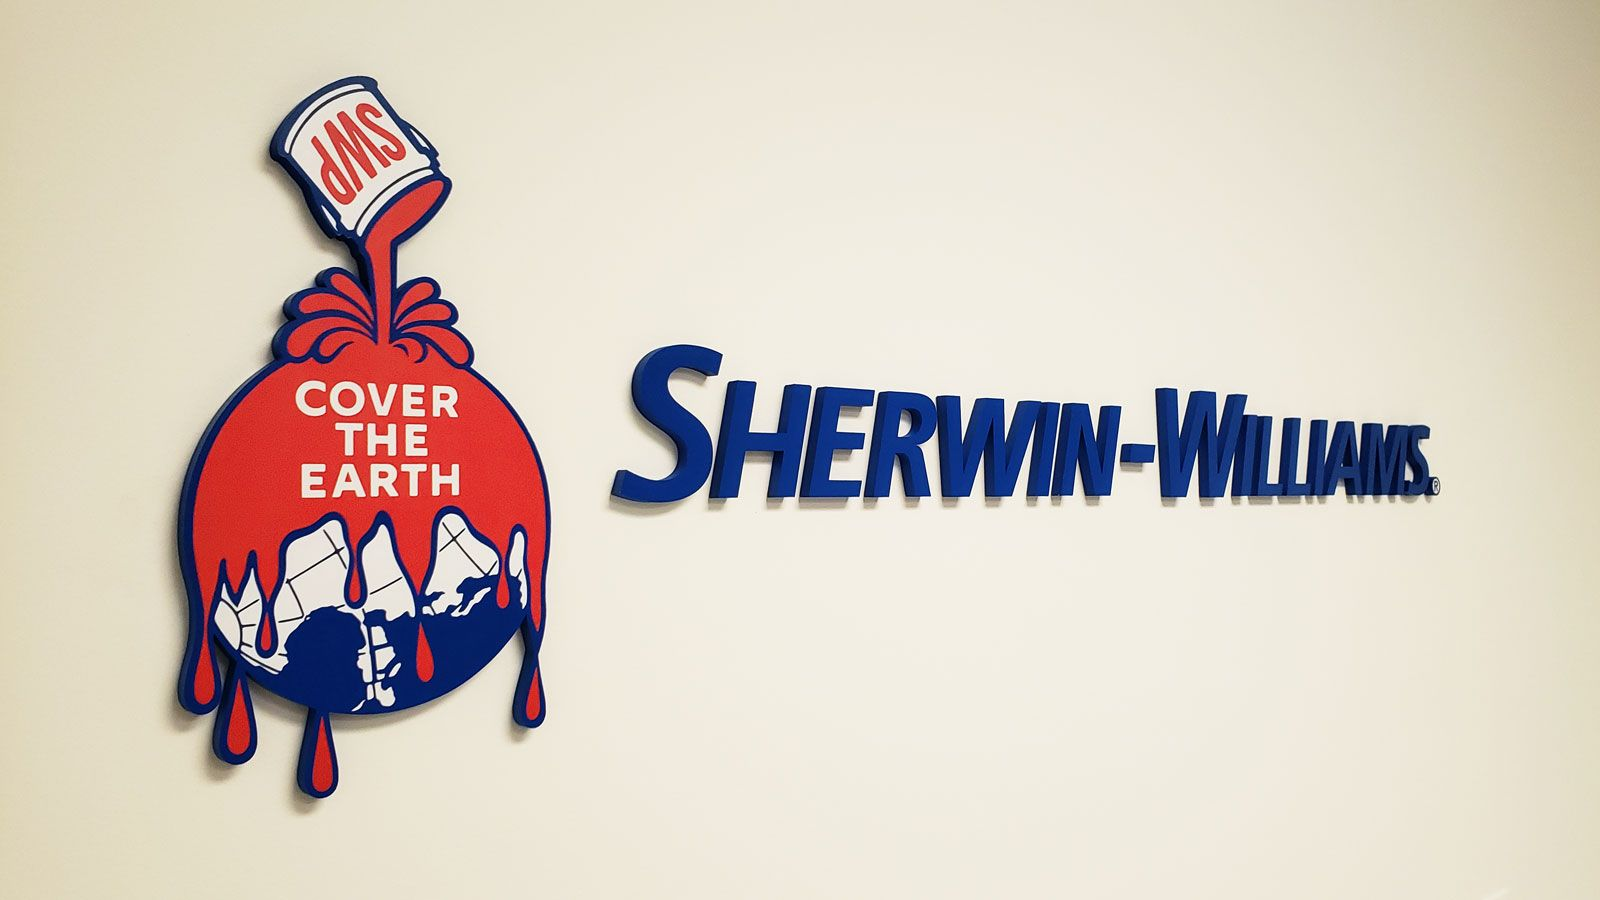 Sherwin-Williams 3d acrylic letters and logo sign painted in blue and red colors made of acrylic for office interior branding